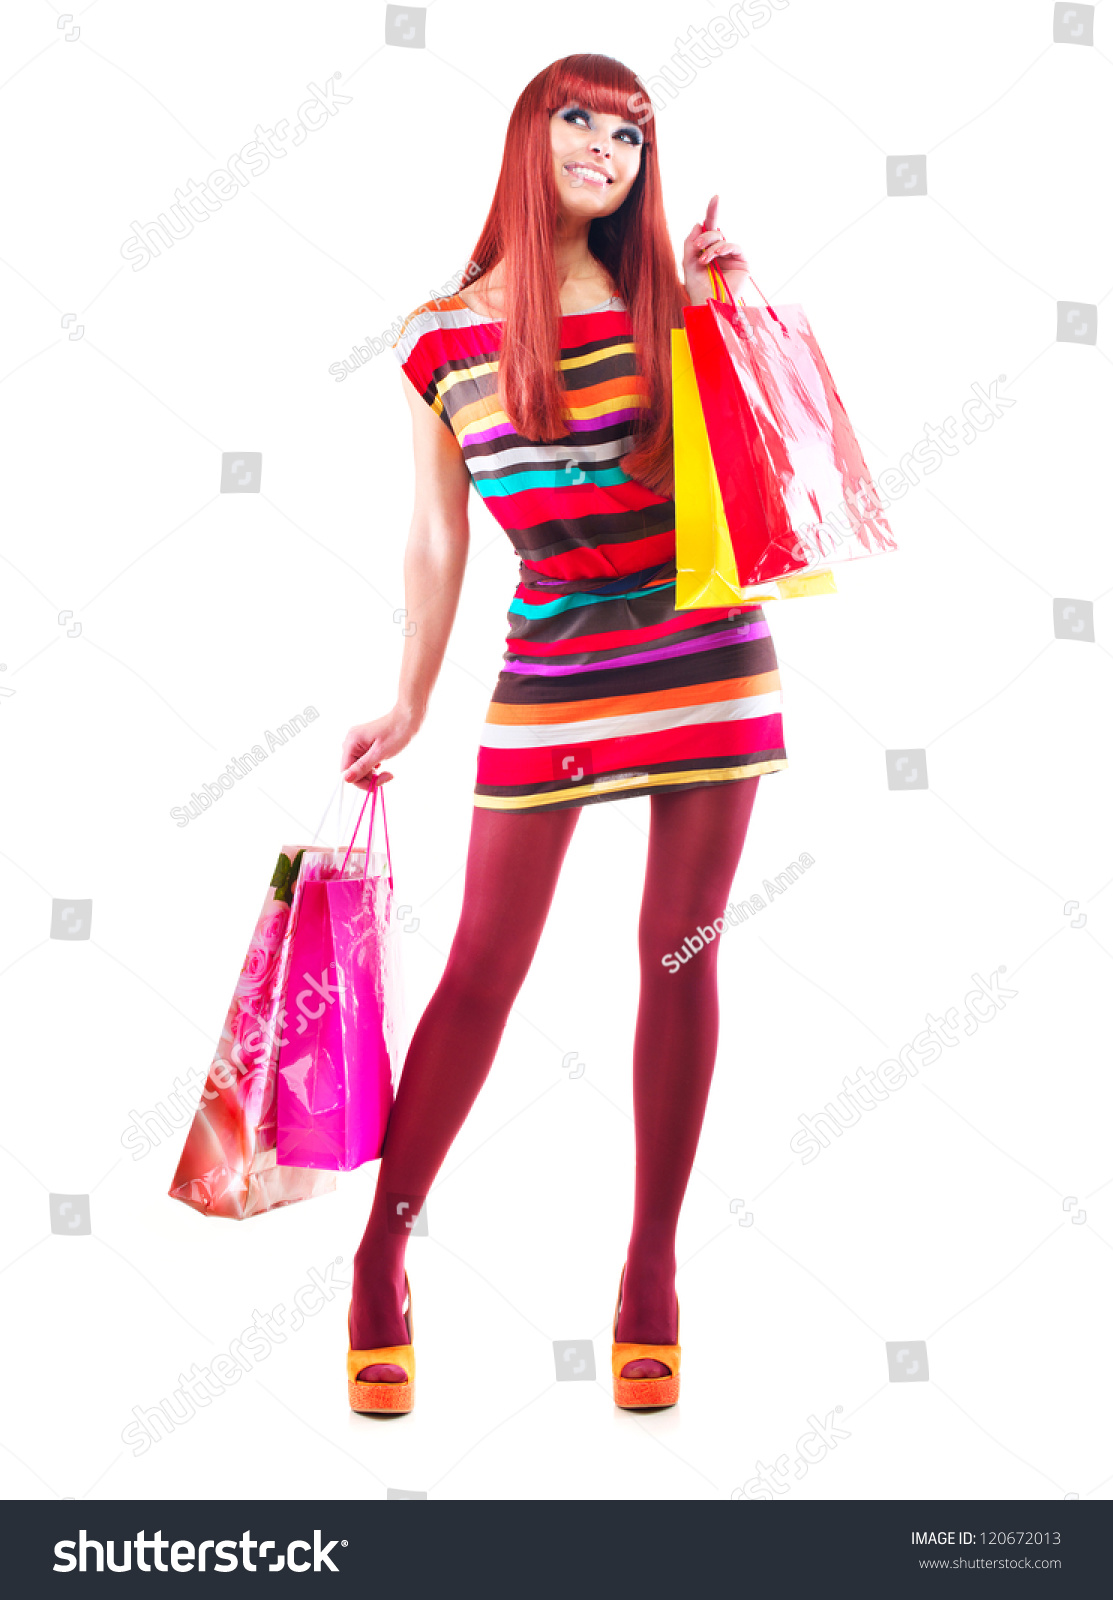 Woman posing with shopping bags isolated on white background full - Fashion Shopping Girl Full Length Portrait Beauty Woman With Shopping Bags Isolated On White